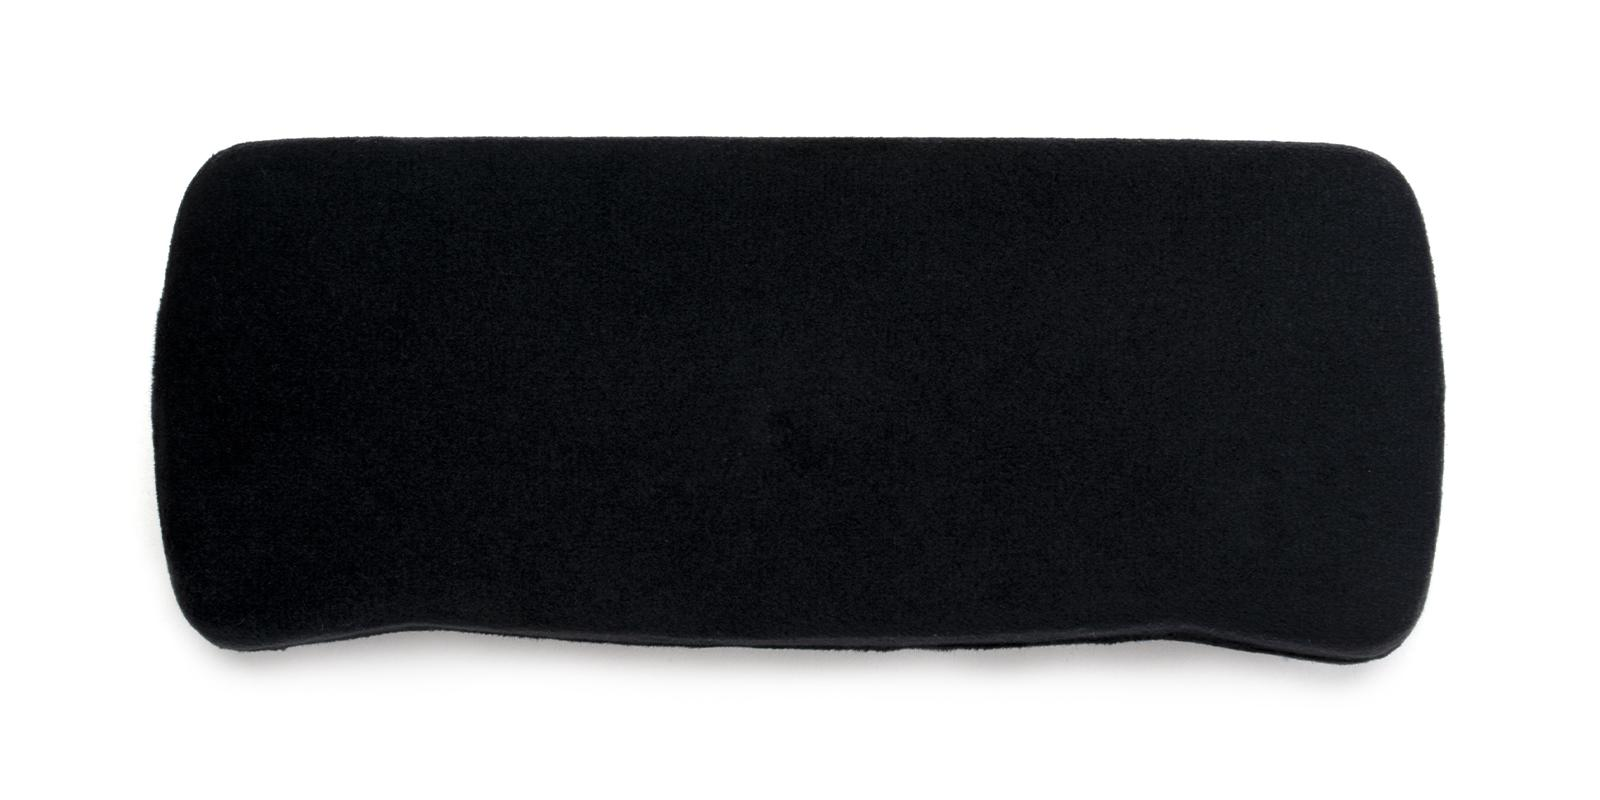 Velvet Glasses Case Black   Frames from ABBE Glasses